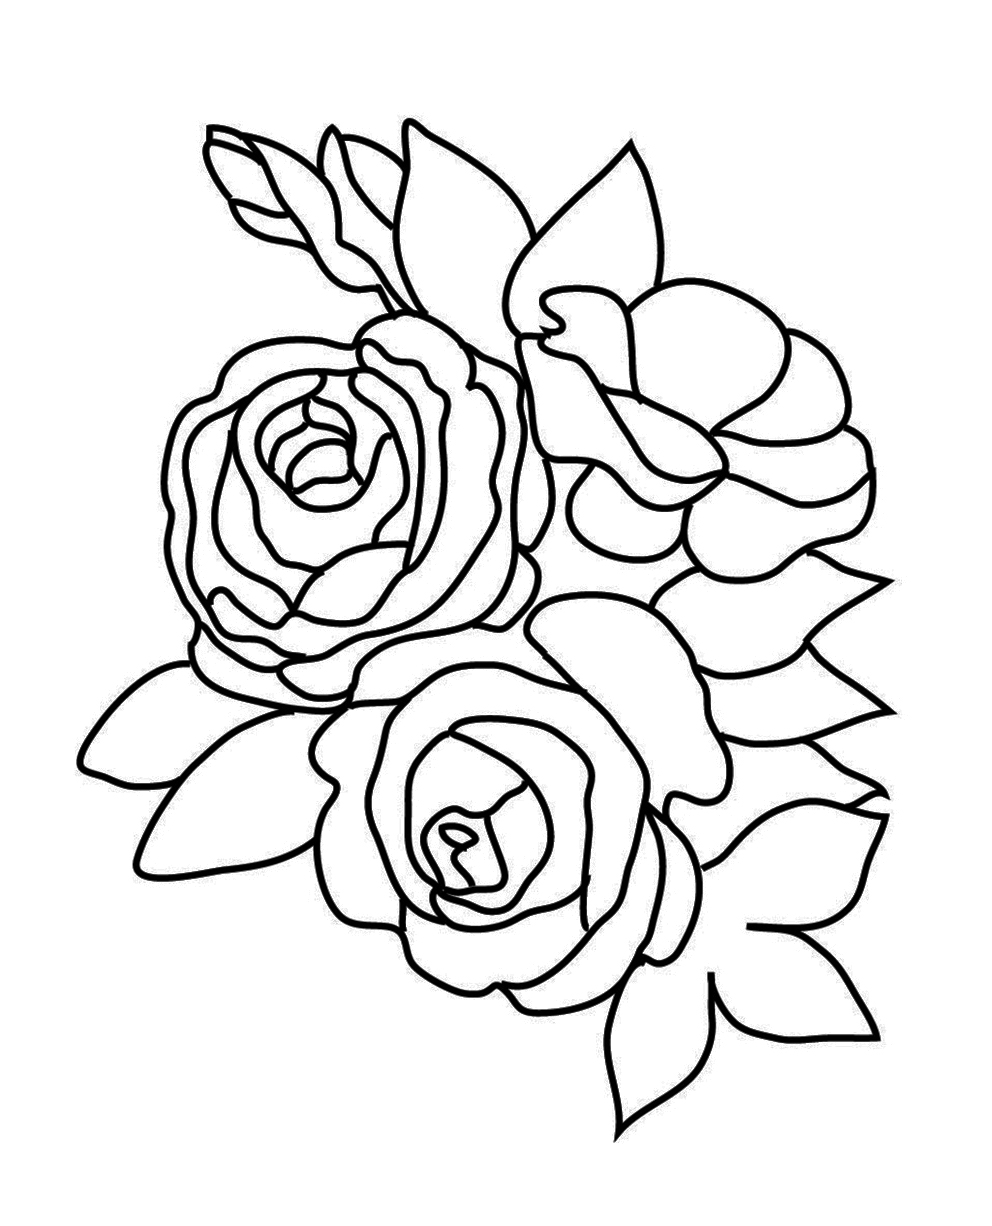 rose color sheets rose coloring pages download and print rose coloring pages rose sheets color